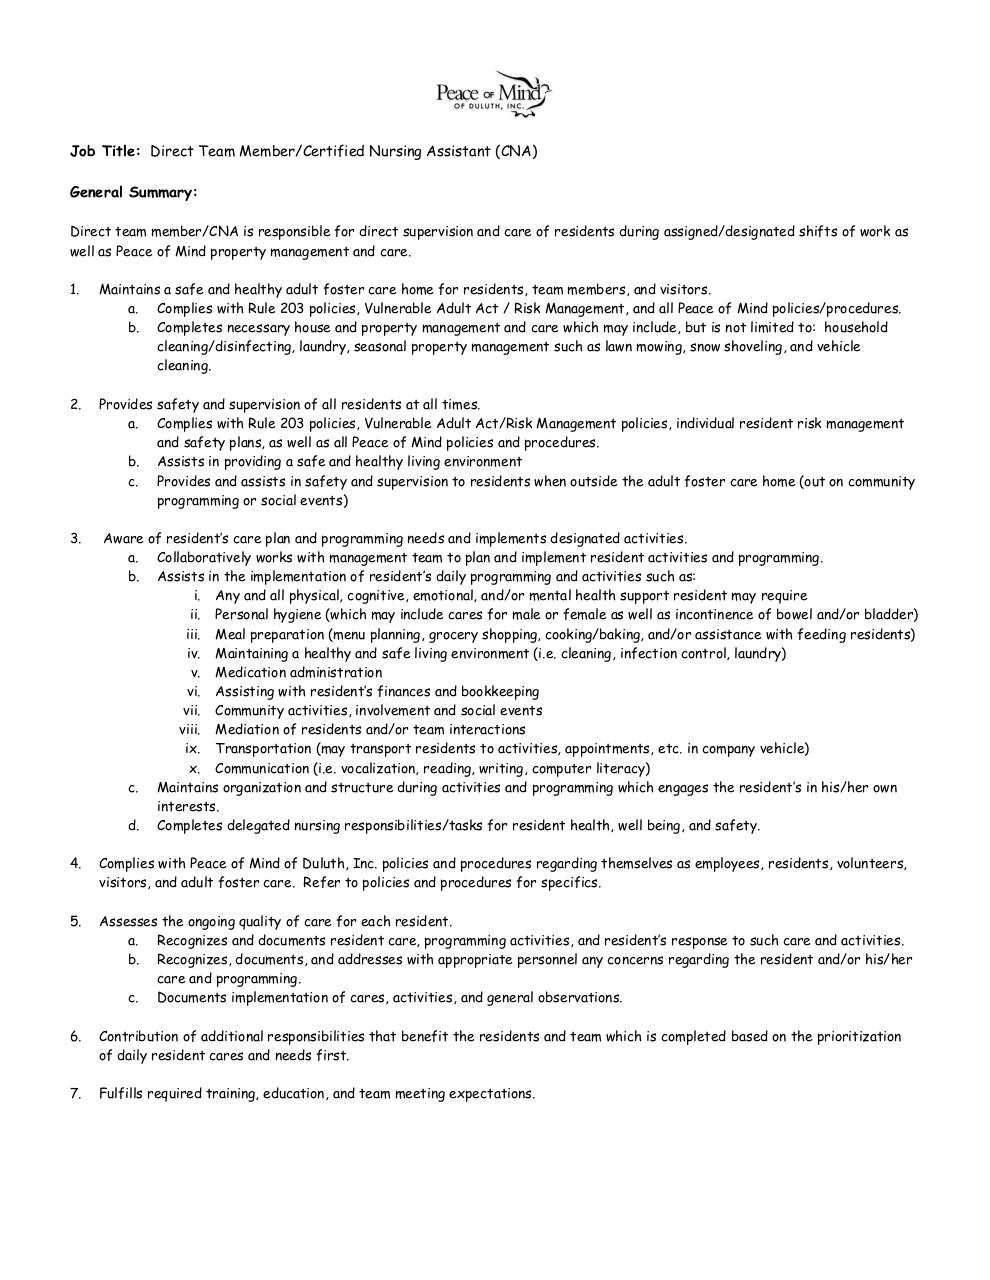 DIRECT TEAM MEMBER AND CNA JOB DESCRIPTION 2012 By Dan